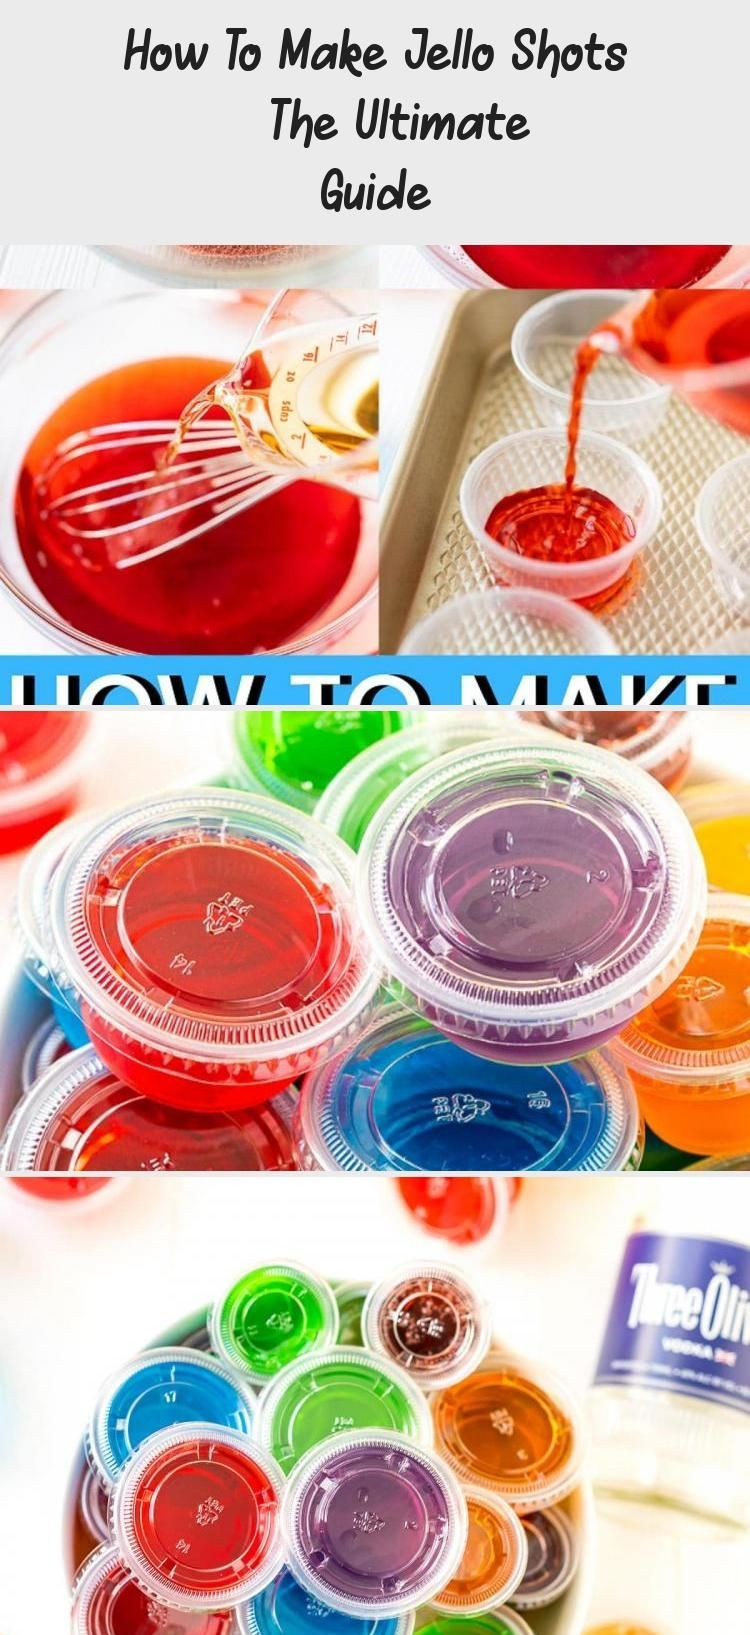 How to make jello shots the ultimate guide